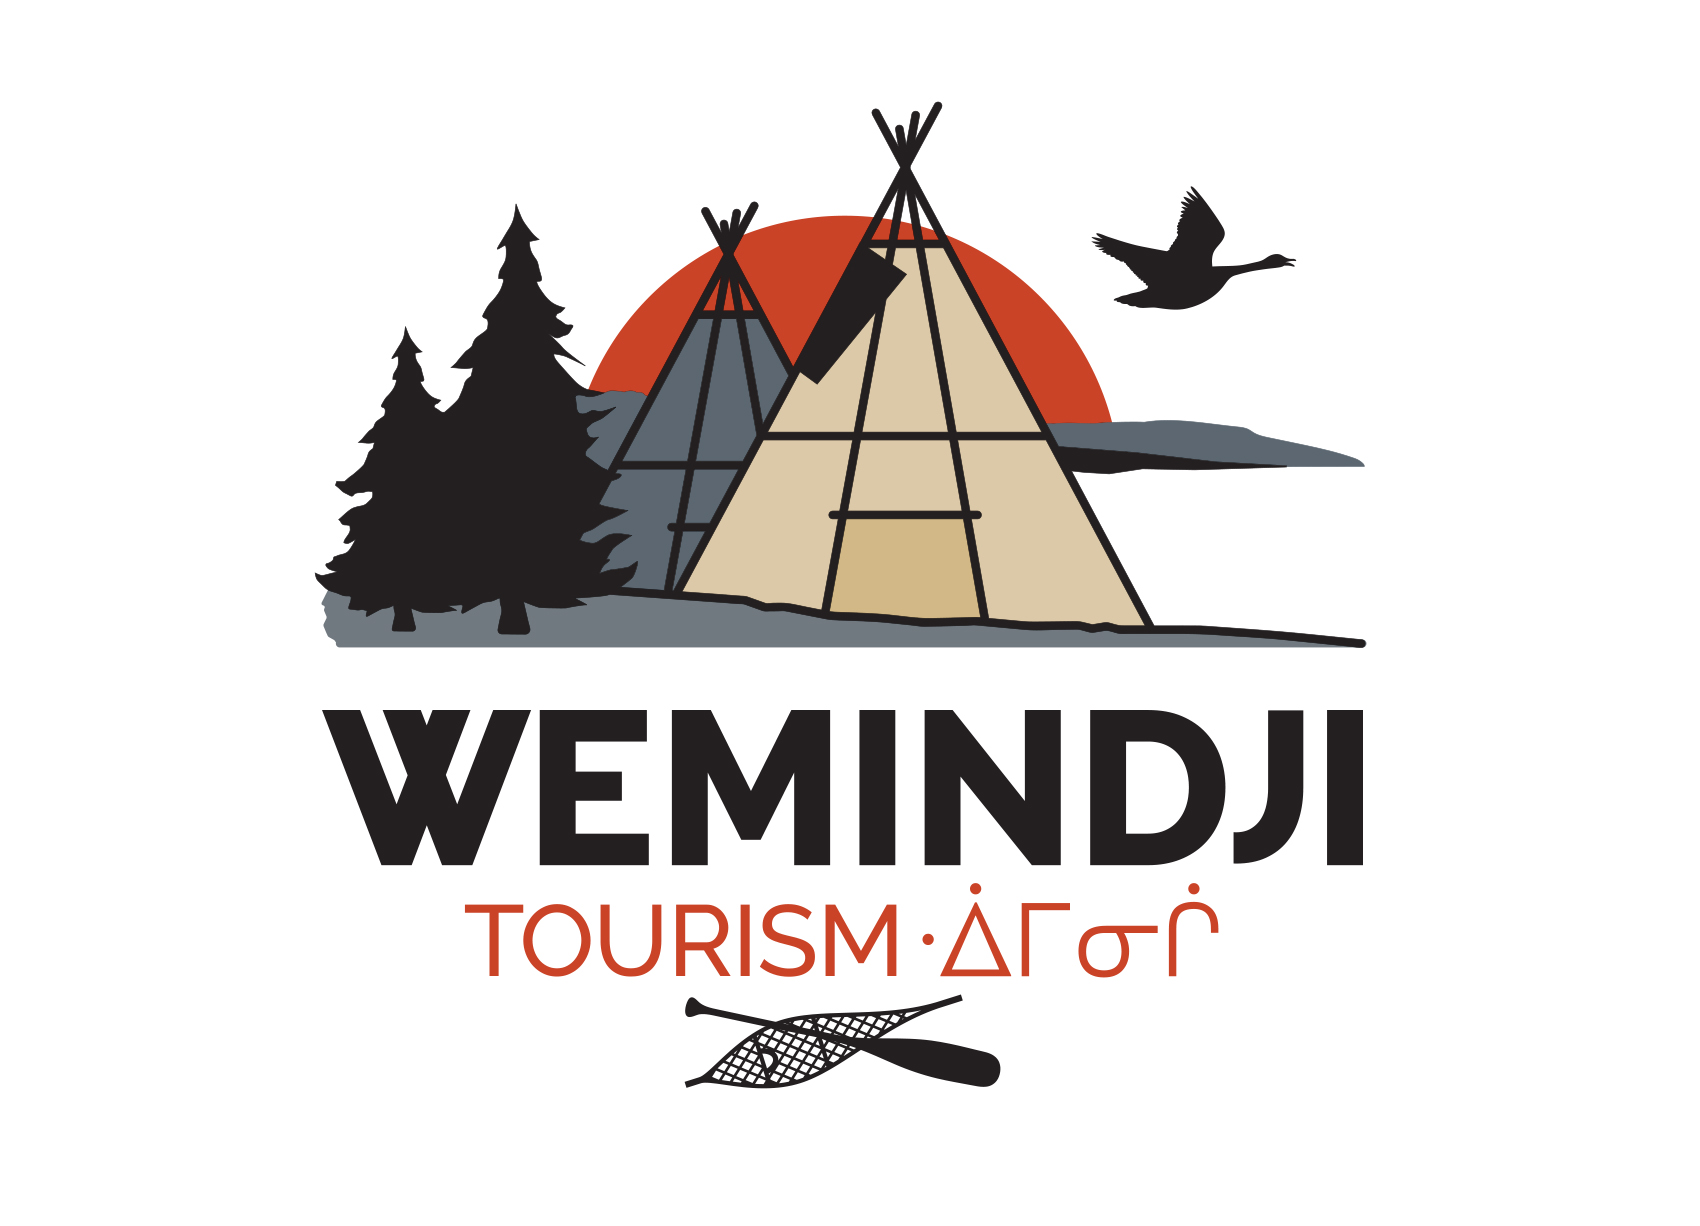 Episode 9 The complete adventure - Wemindji Tourim